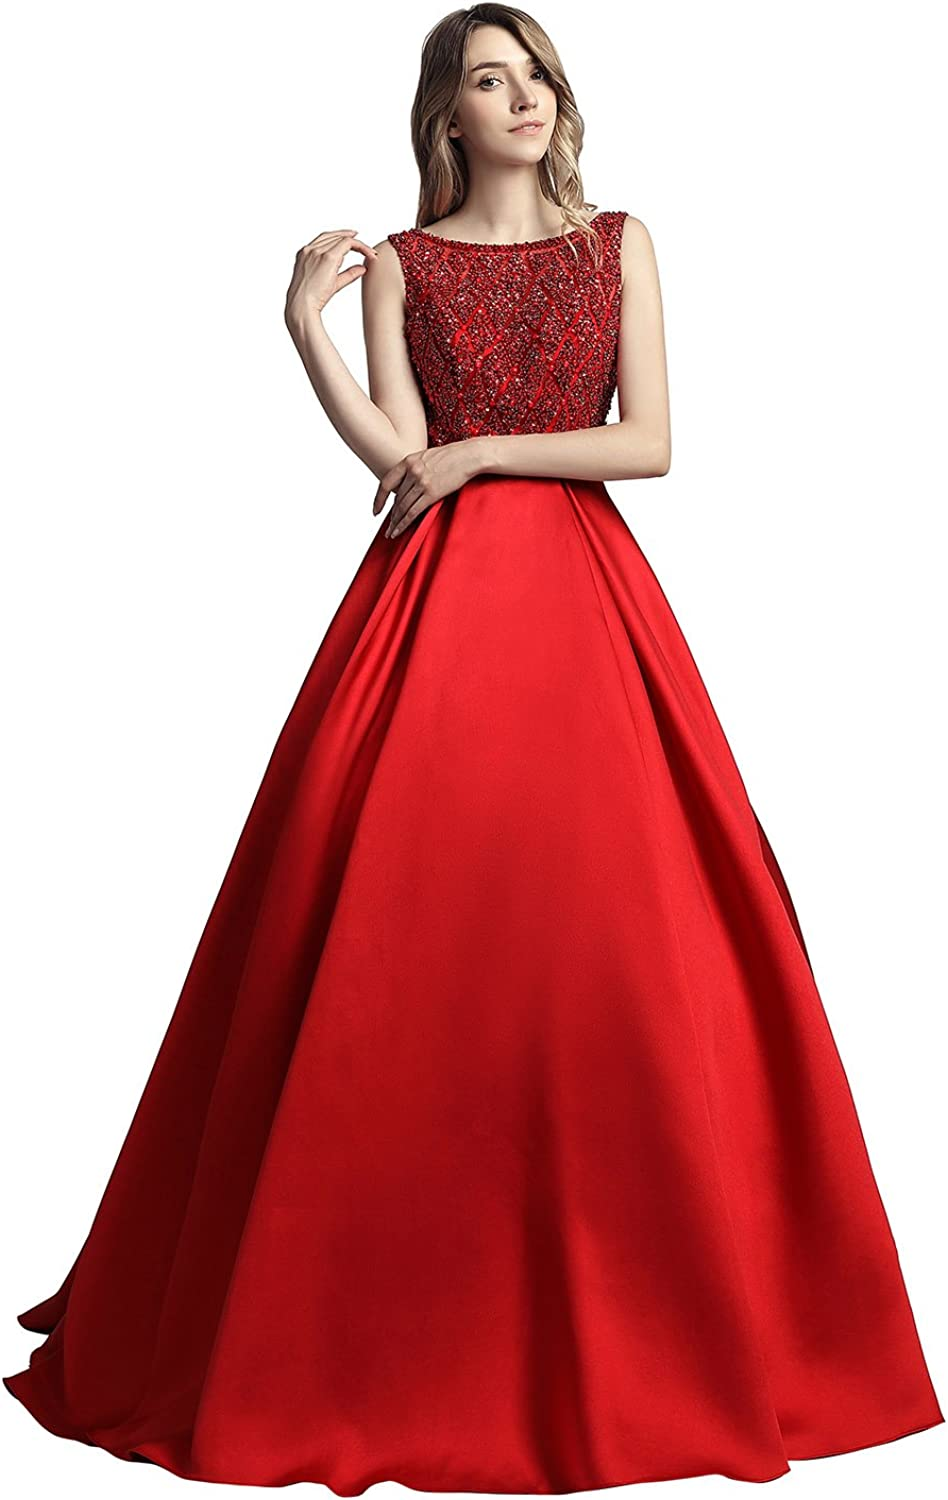 Belle House Prom Dresses 2018 Long for Women Satin Evening Gown with Beading and Sequins Open Back Ball Gown